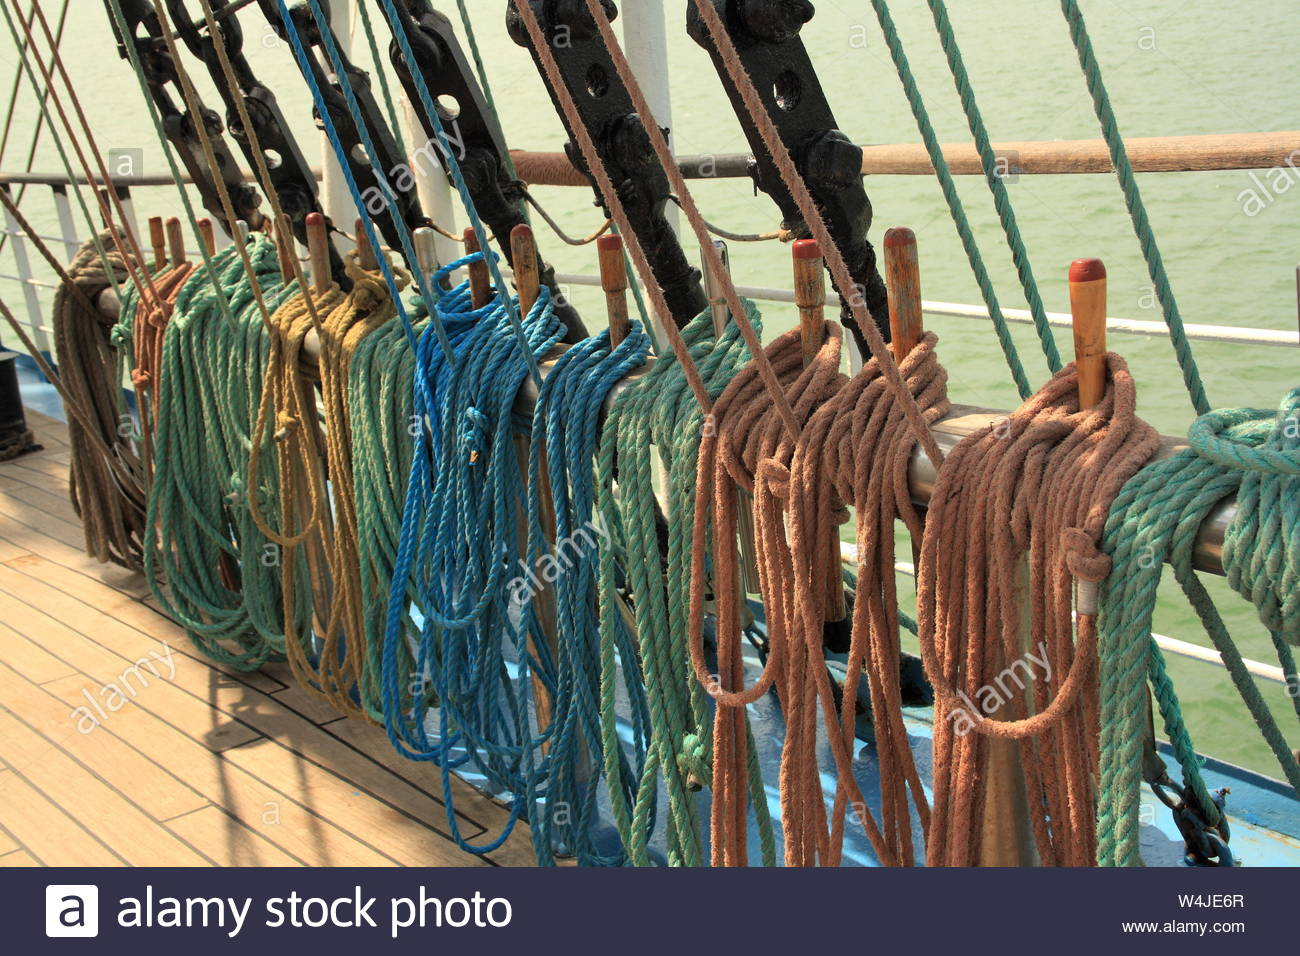 Ship multi-colored ropes on the rails. wooden deck and sea. Stock Photo